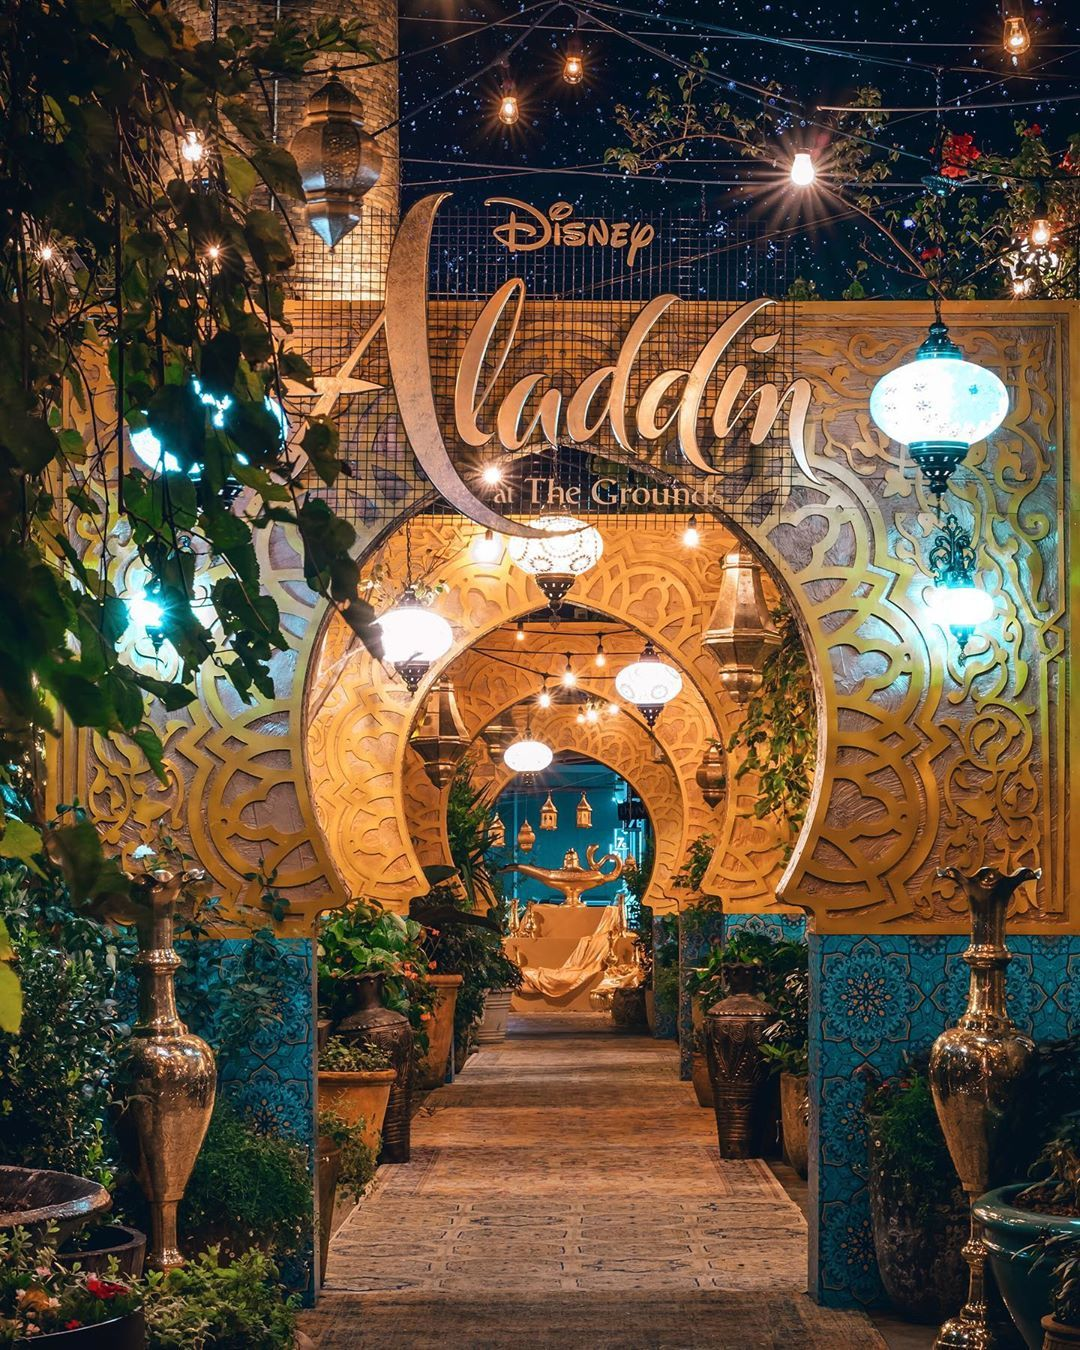 Disney Fans Can Experience This Breathtaking Café Inspired By The Movie